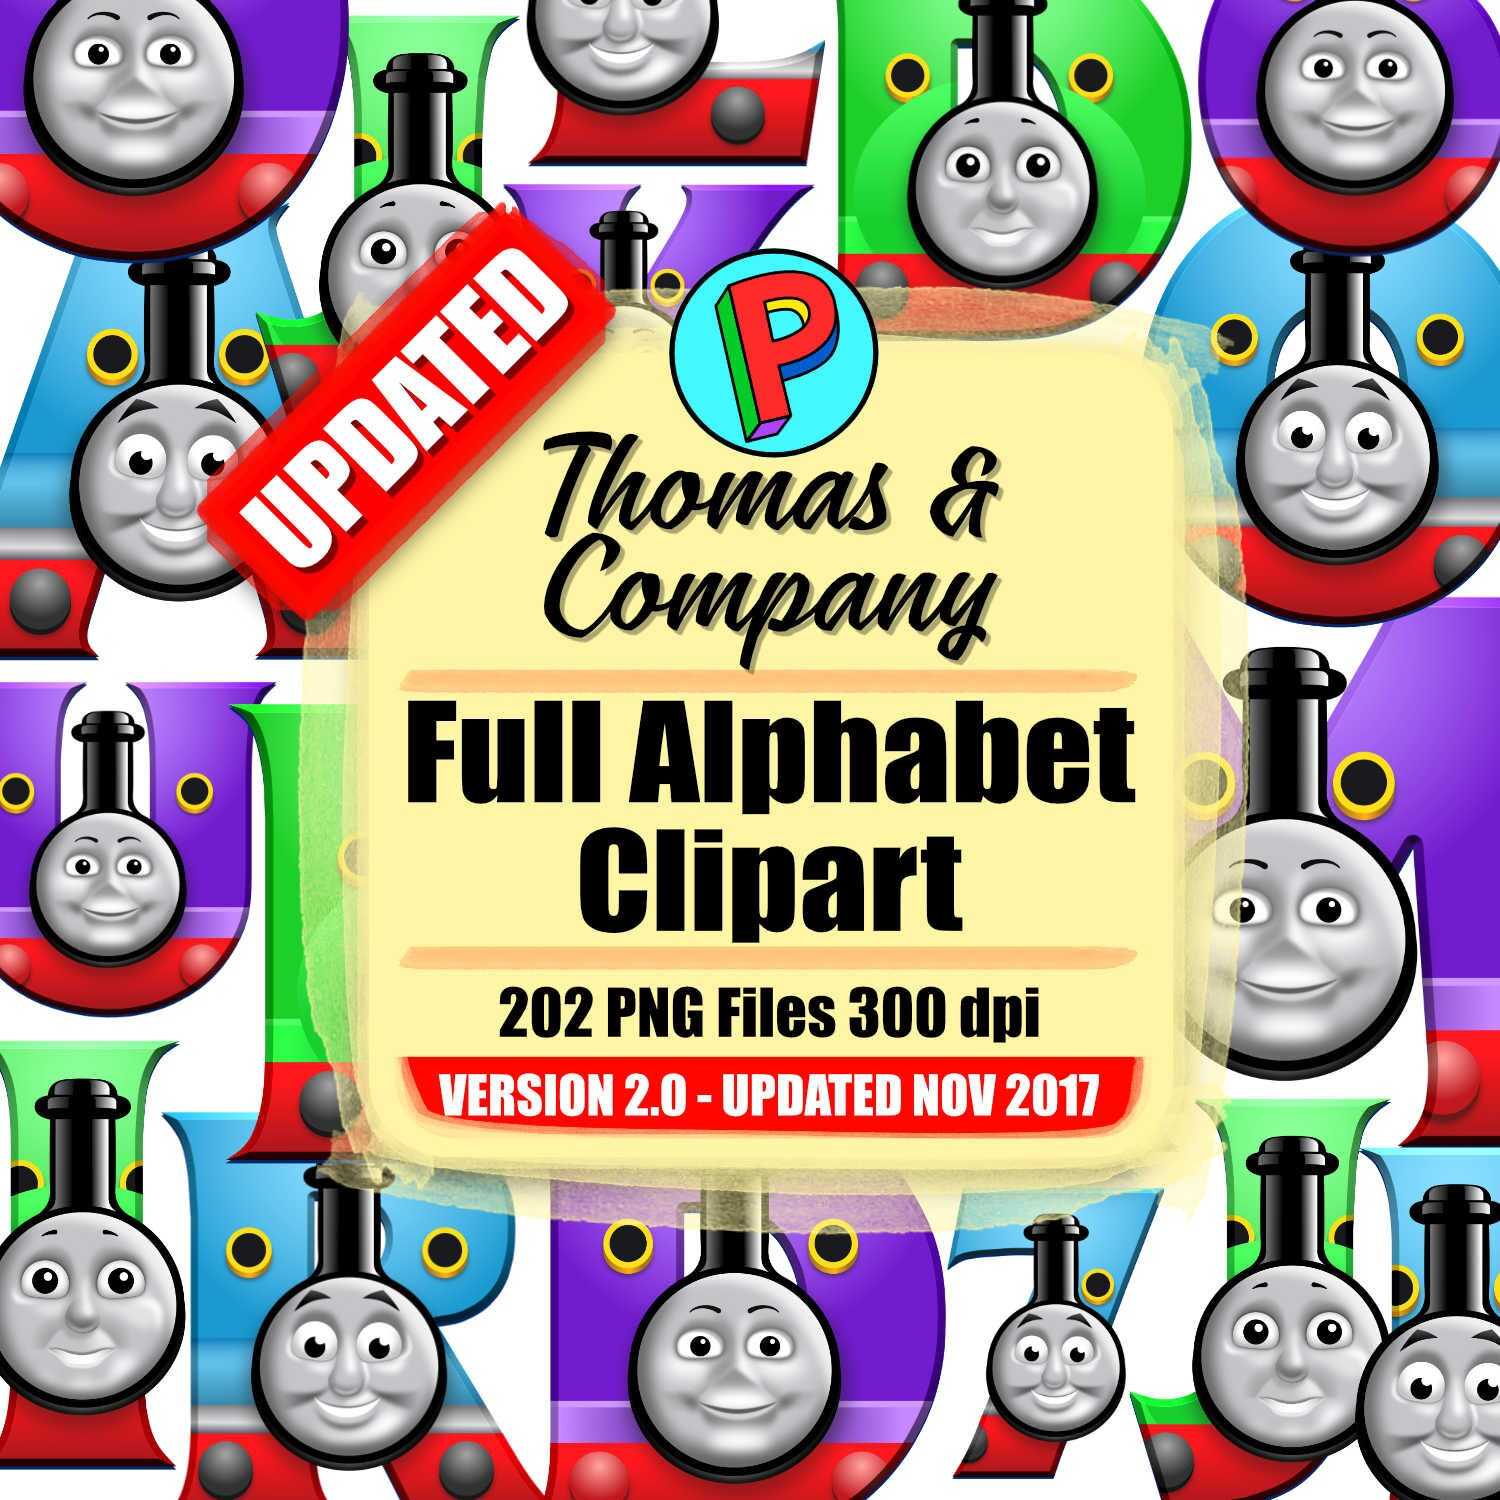 Thomas and Company Full Alphabet Clipart 202 png files 300